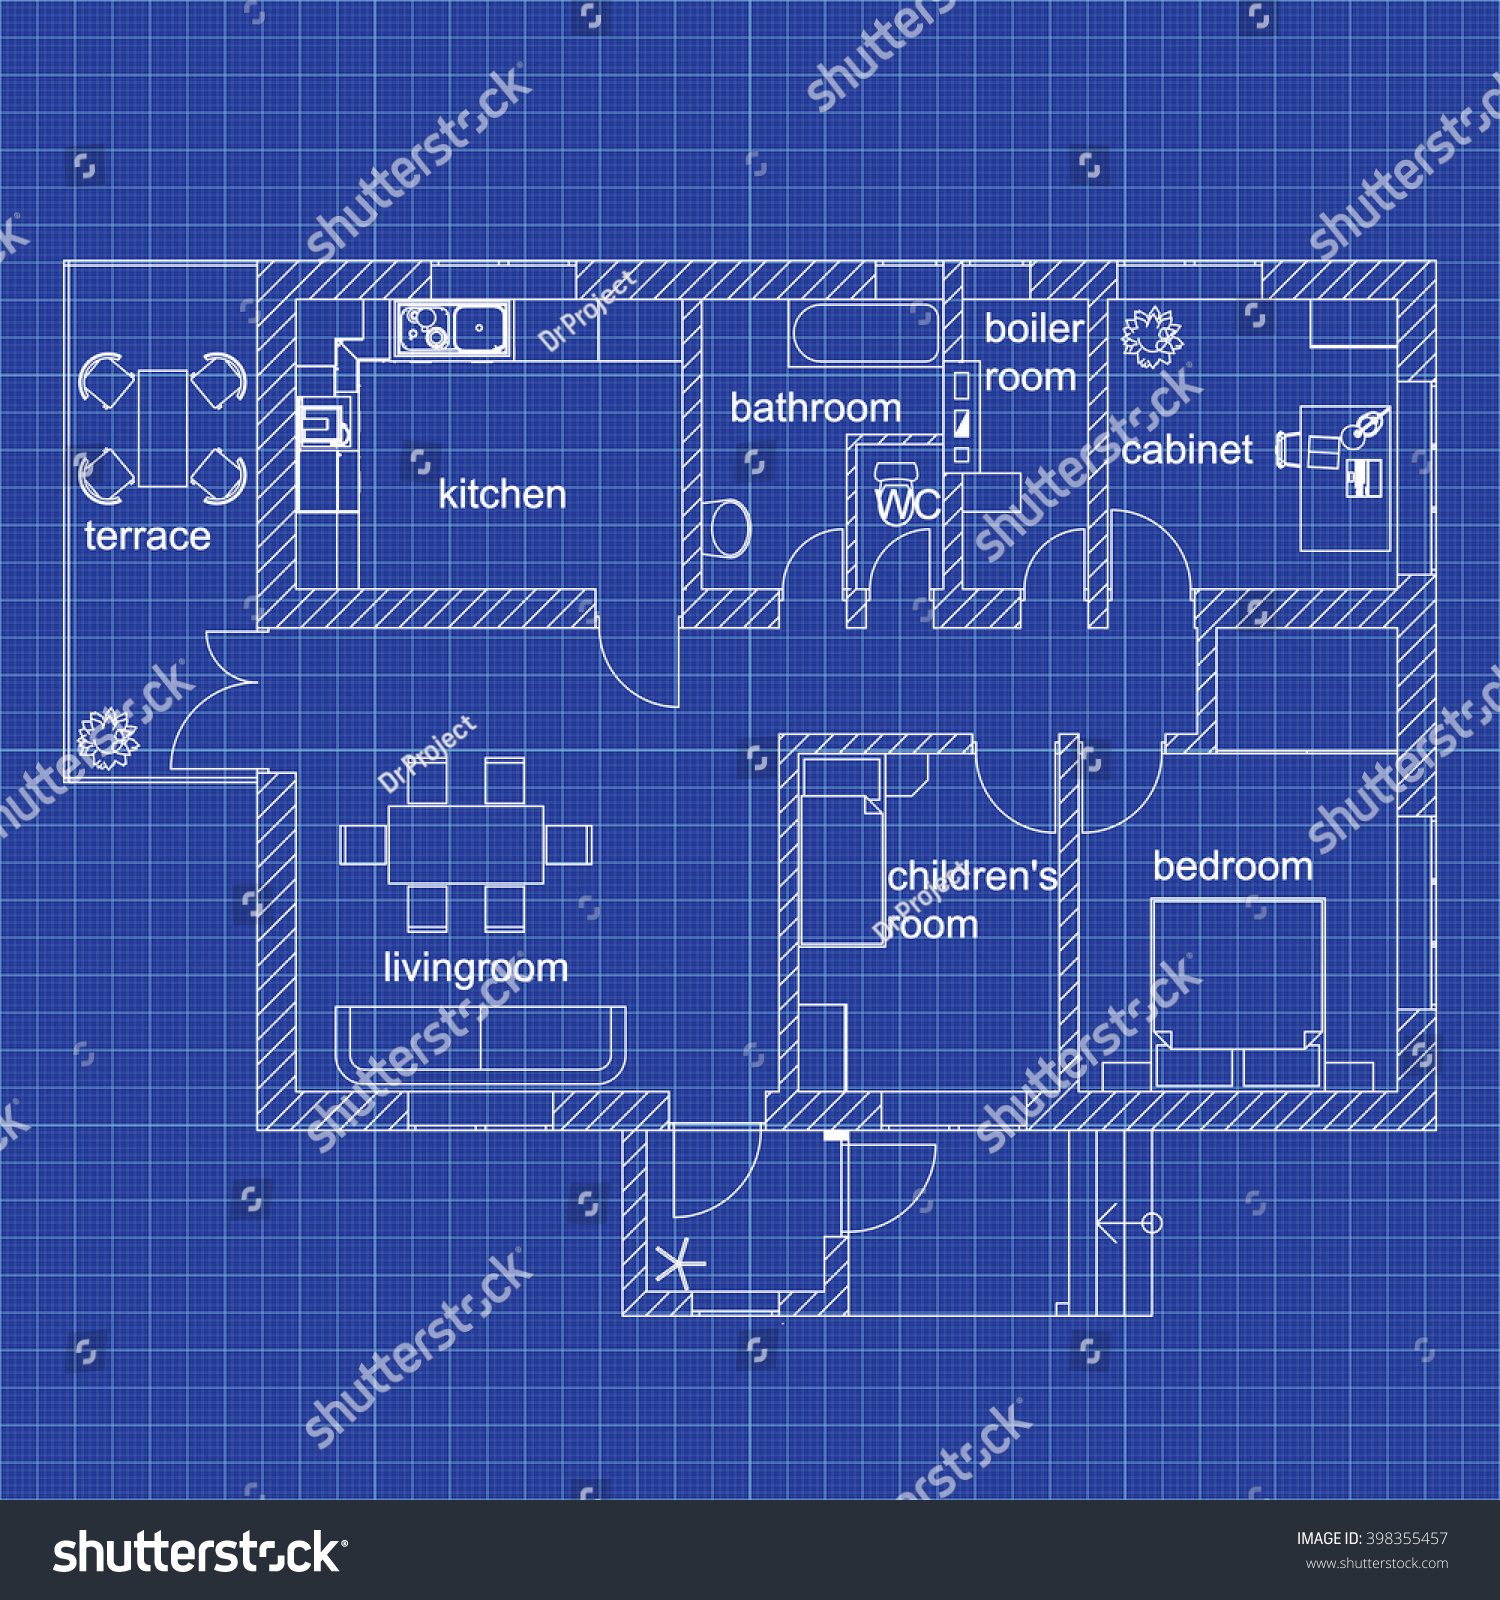 Blueprint floor plan modern apartment on vectores en stock 398355457 blueprint floor plan of a modern apartment on graph paper vector illustration architectural background malvernweather Choice Image